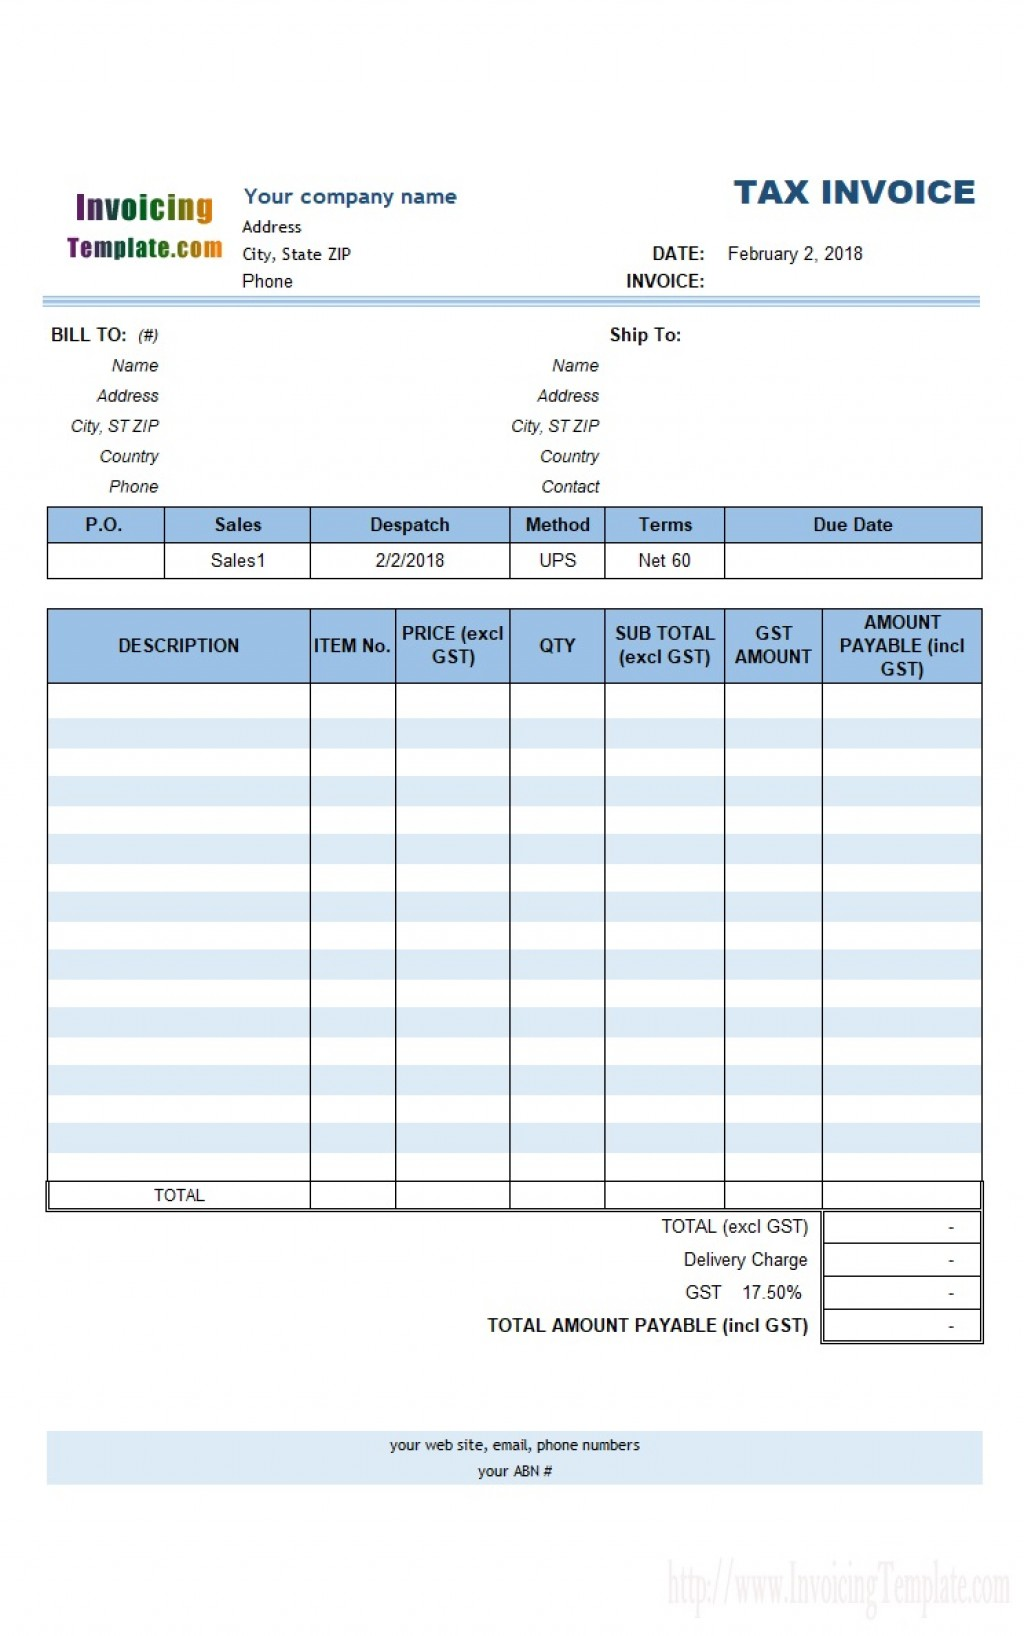 000 Fantastic Free Excell Invoice Template Picture  Excel Gst India Canada Tax AustraliaLarge